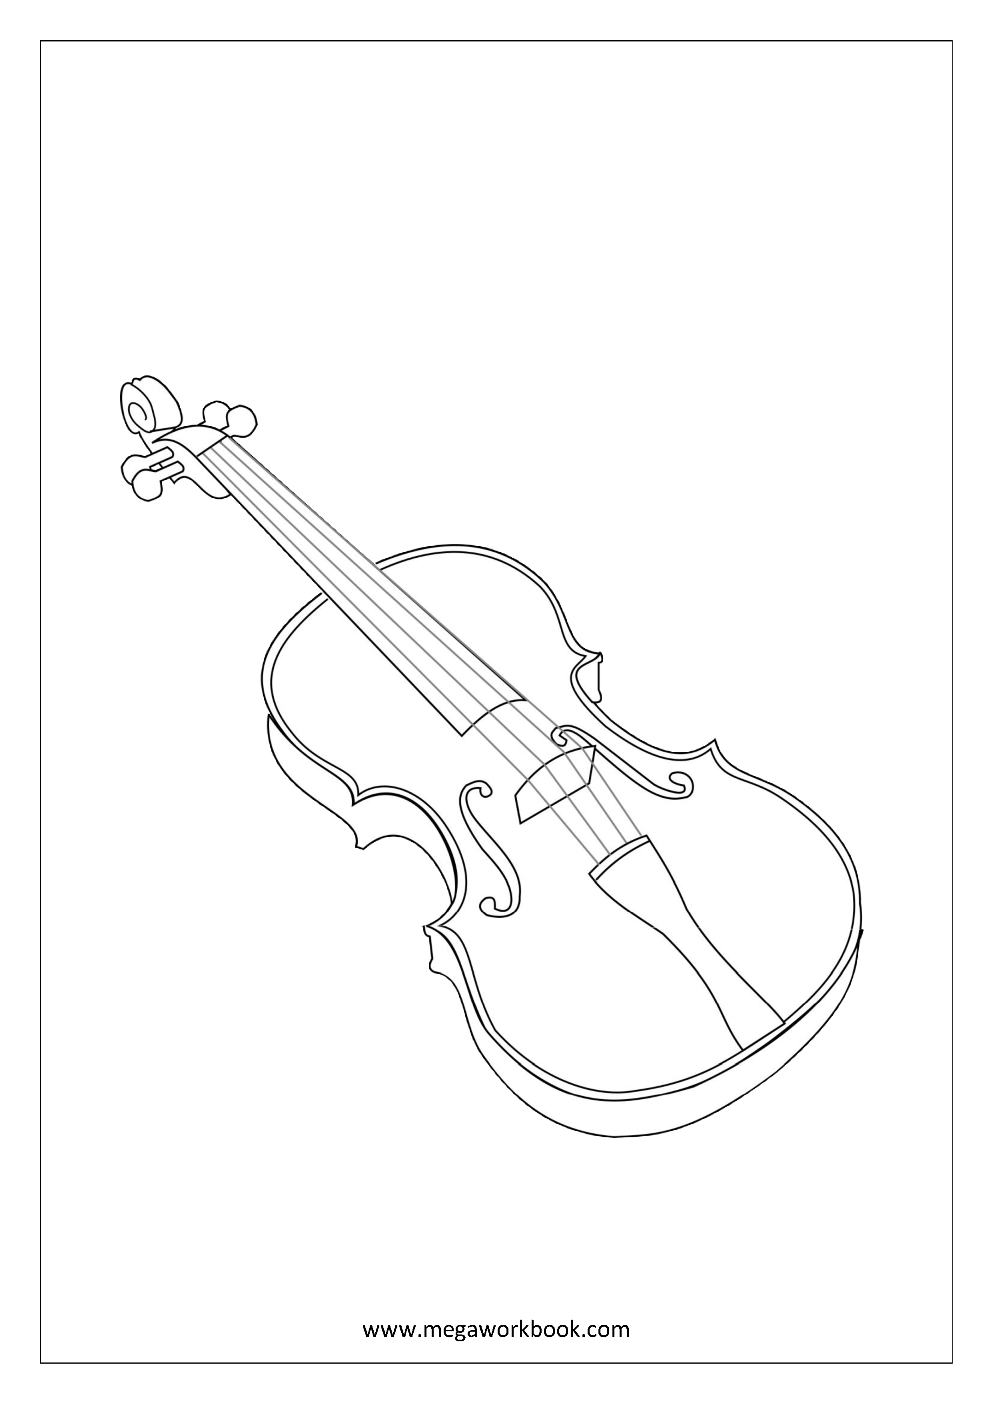 free printable coloring pages of musical instruments musical instrument coloring pages print out coloring home instruments of coloring printable free musical pages